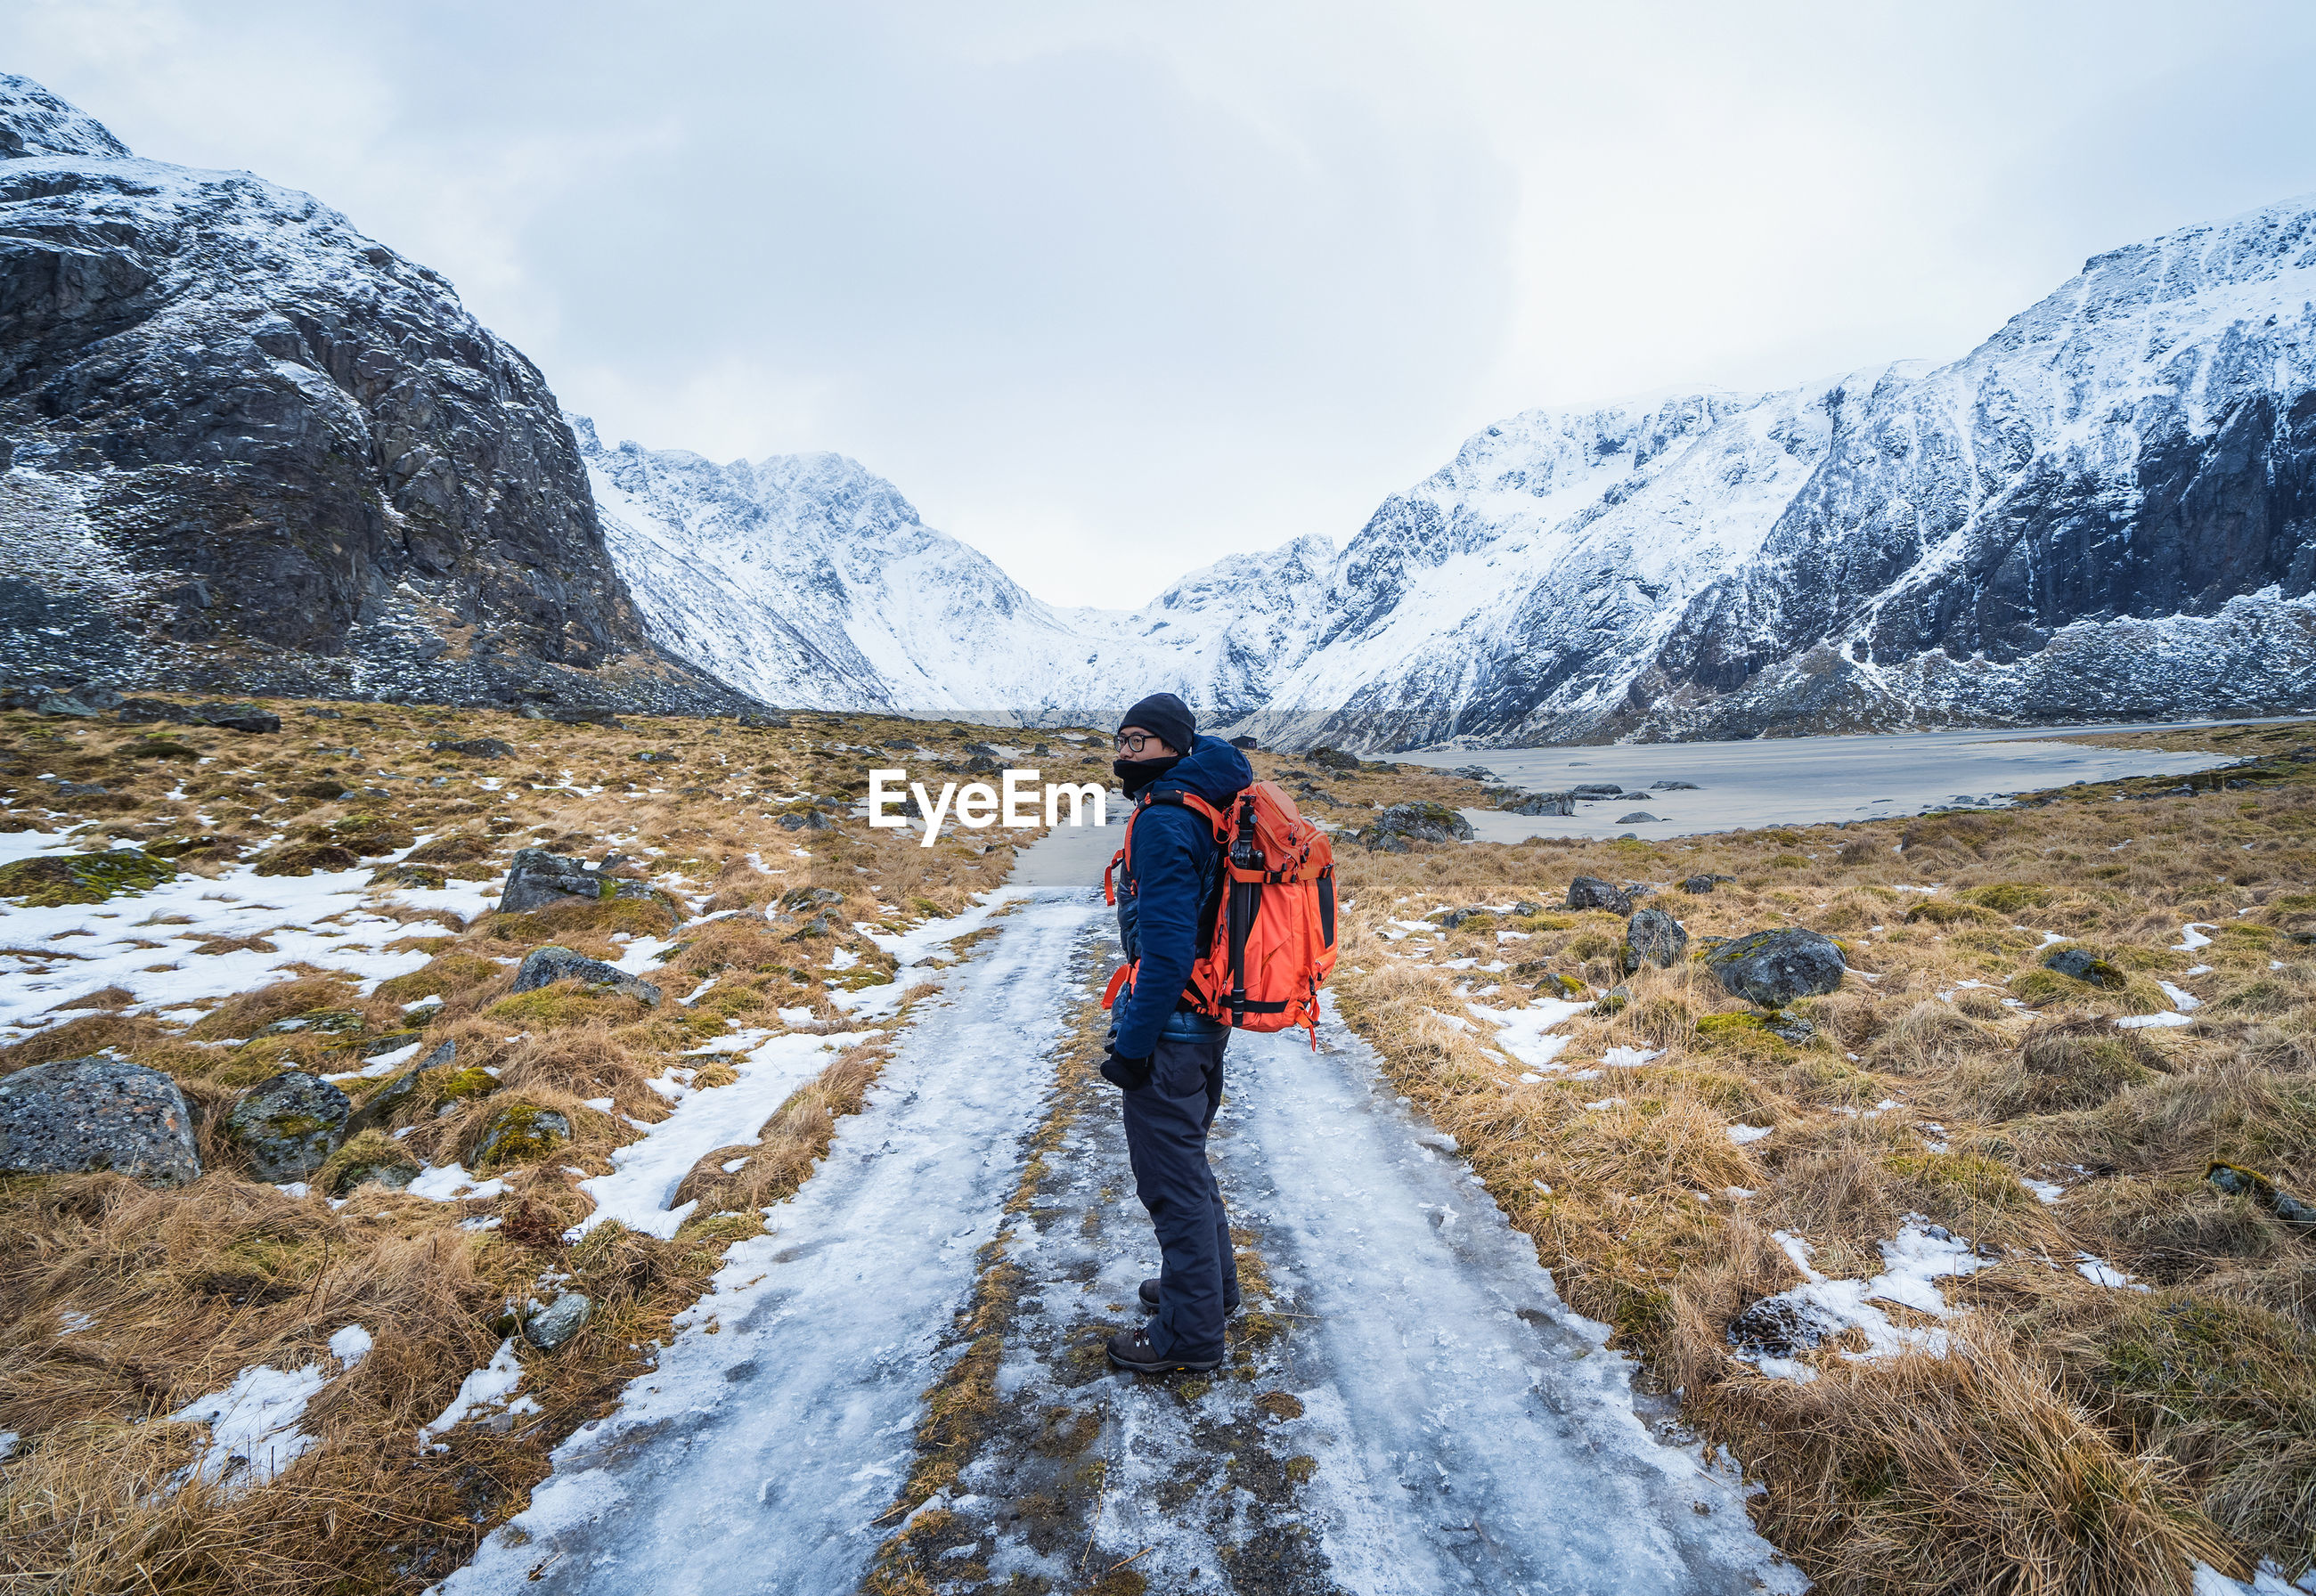 REAR VIEW OF MAN WALKING ON SNOWCAPPED MOUNTAINS AGAINST SKY